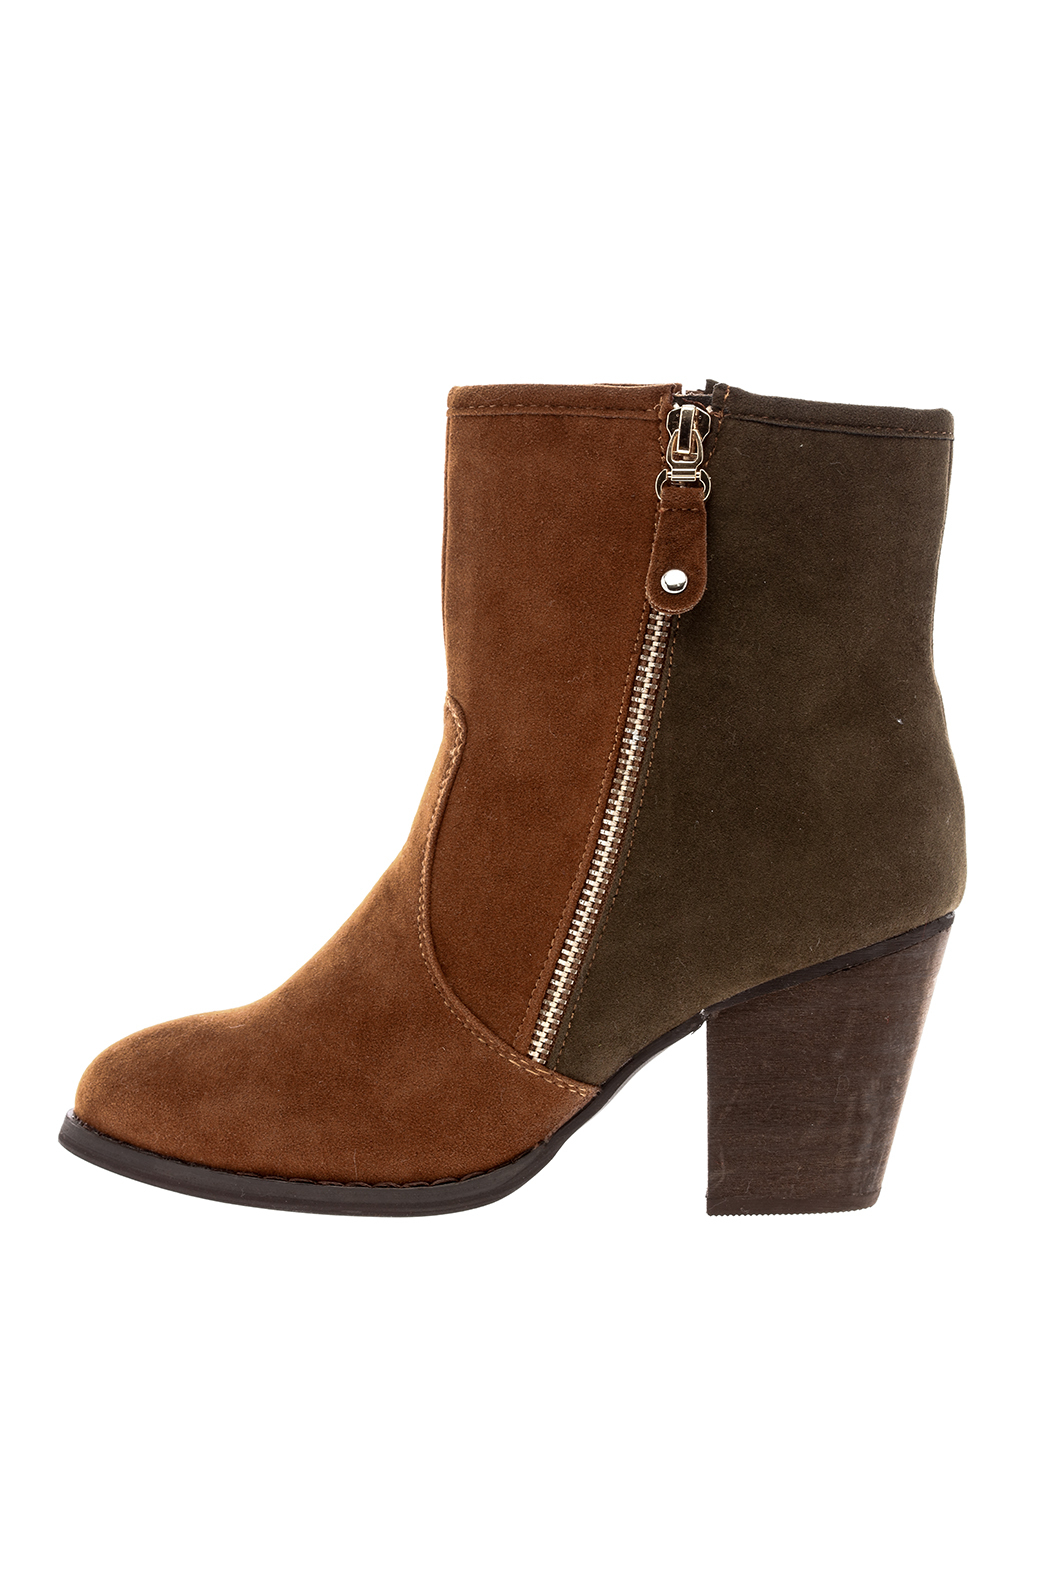 Charlie Paige Two Tones Booties - Main Image